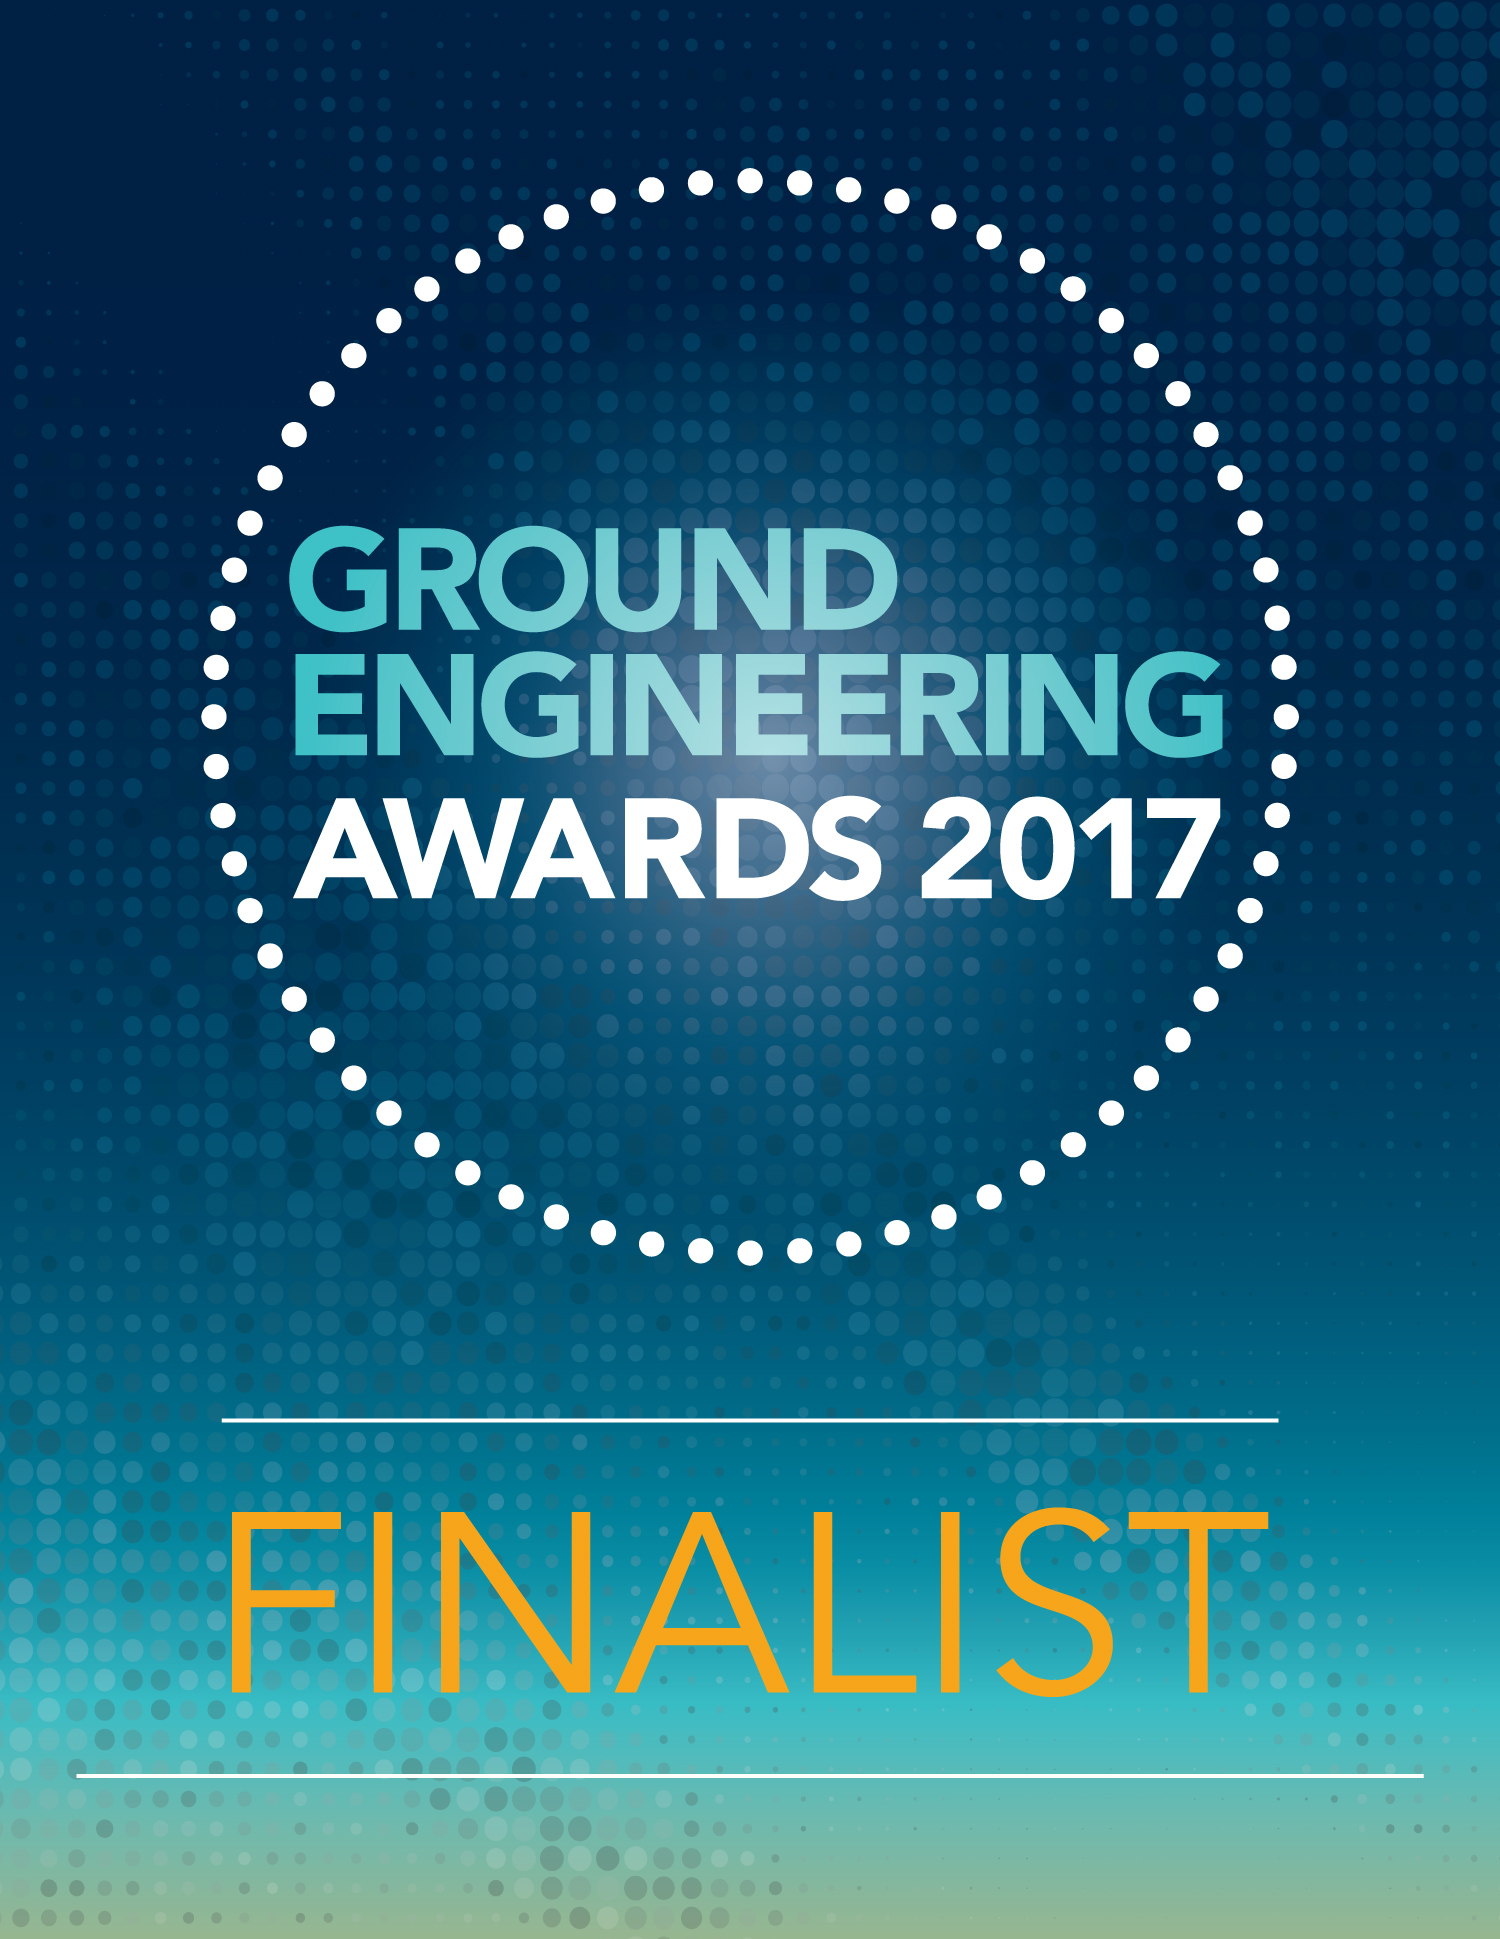 Ground Engineering Awards Finalist 2017